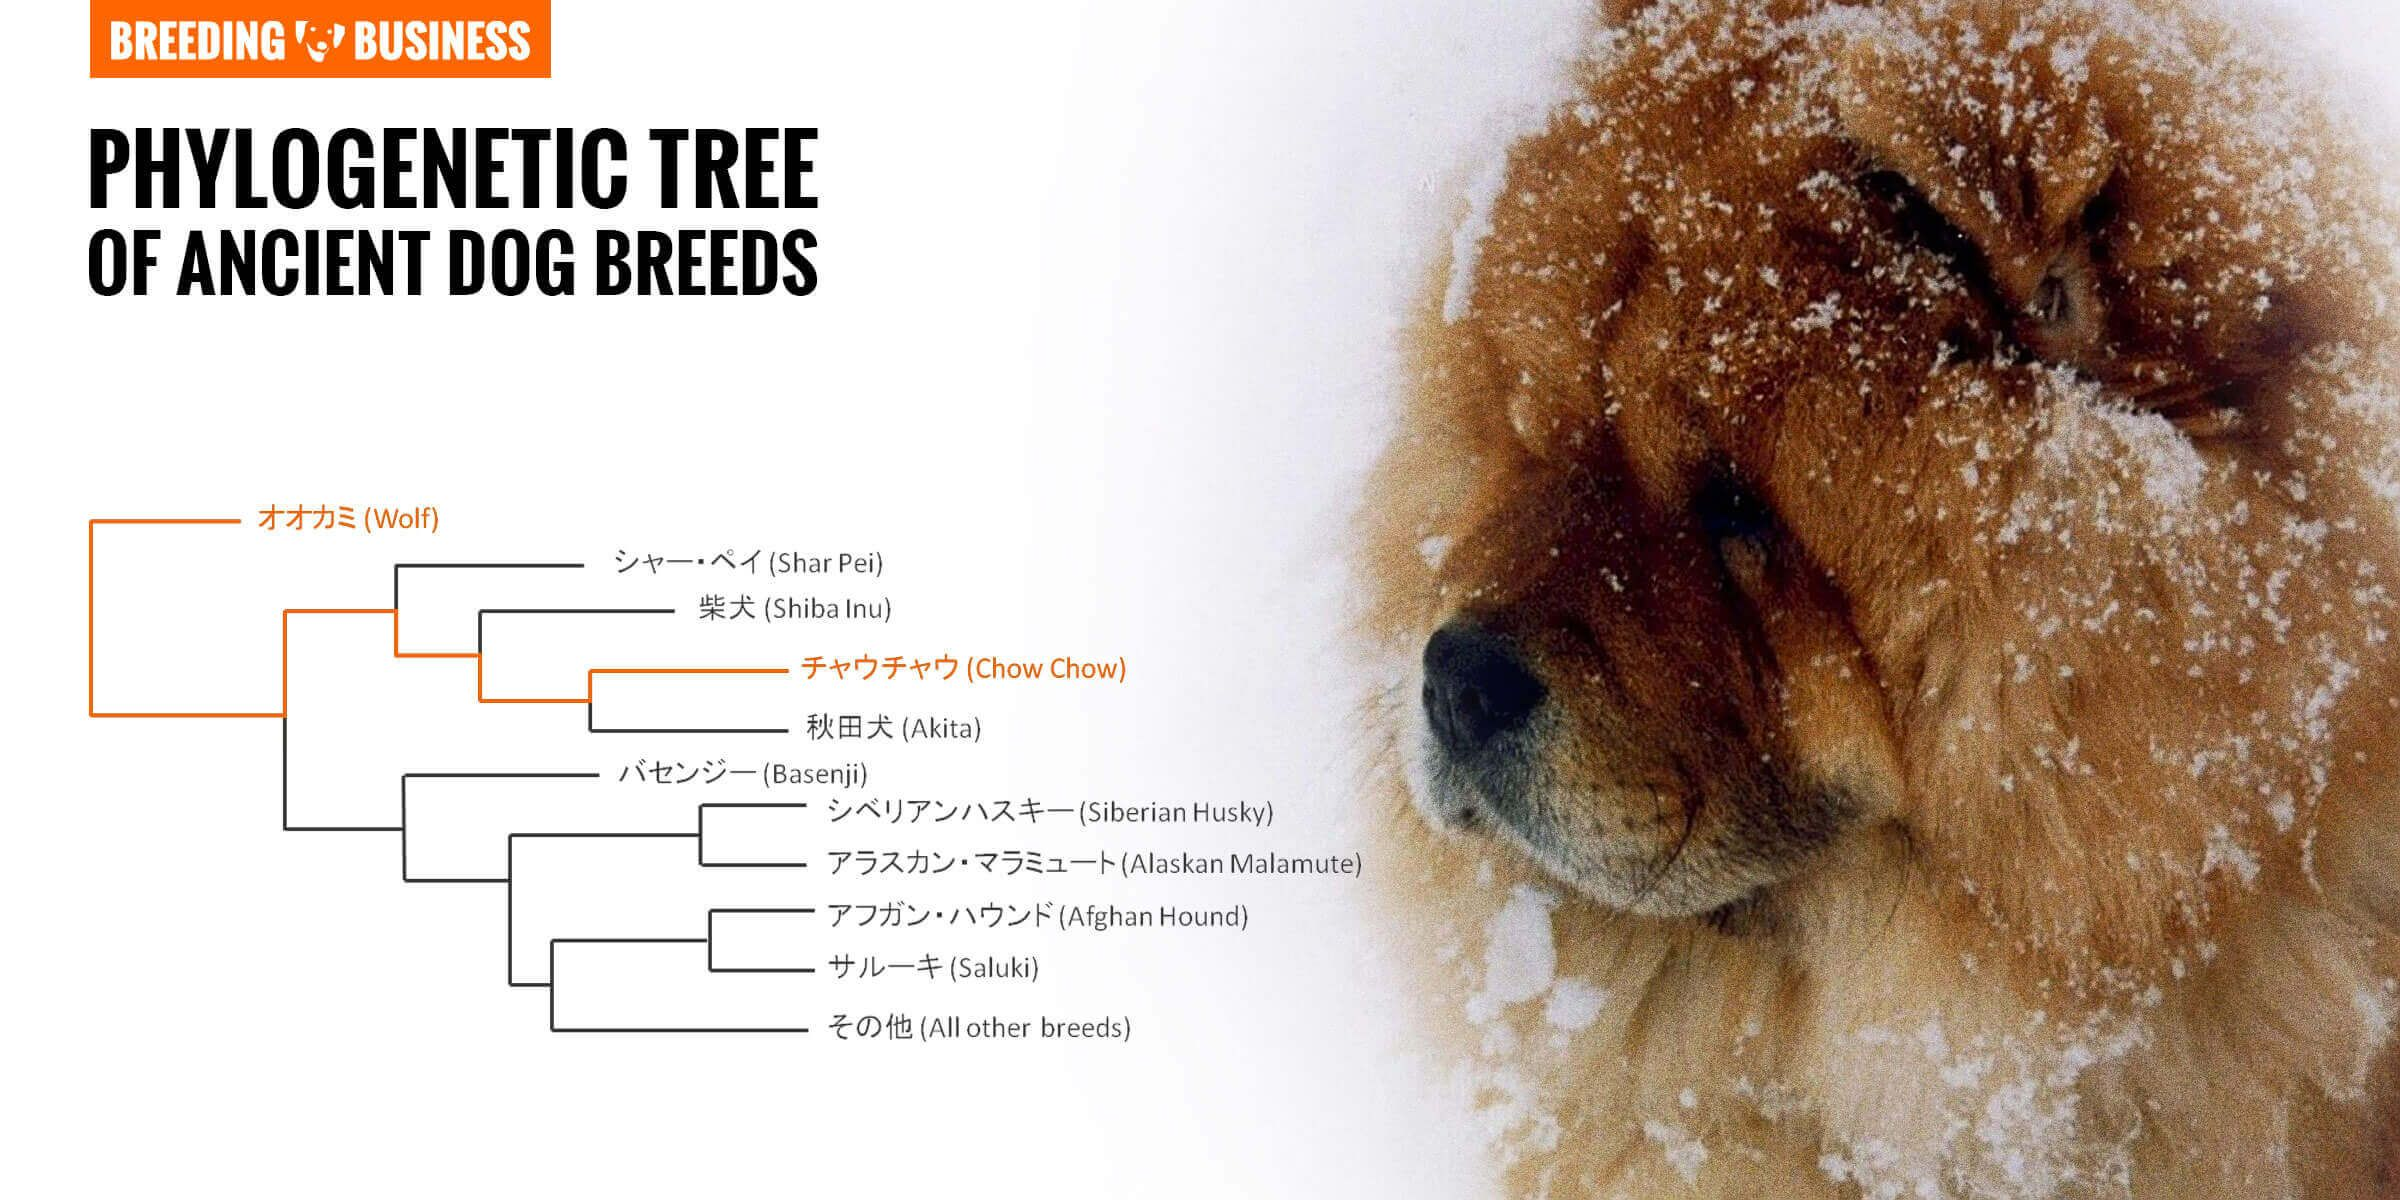 How To Breed Chow Chows Litter Size Mating Health History Chow Chow Dog Breed Facts And Information Wag Dog W In 2020 Chow Dog Breed Chow Chow Dogs Ancient Dog Breeds